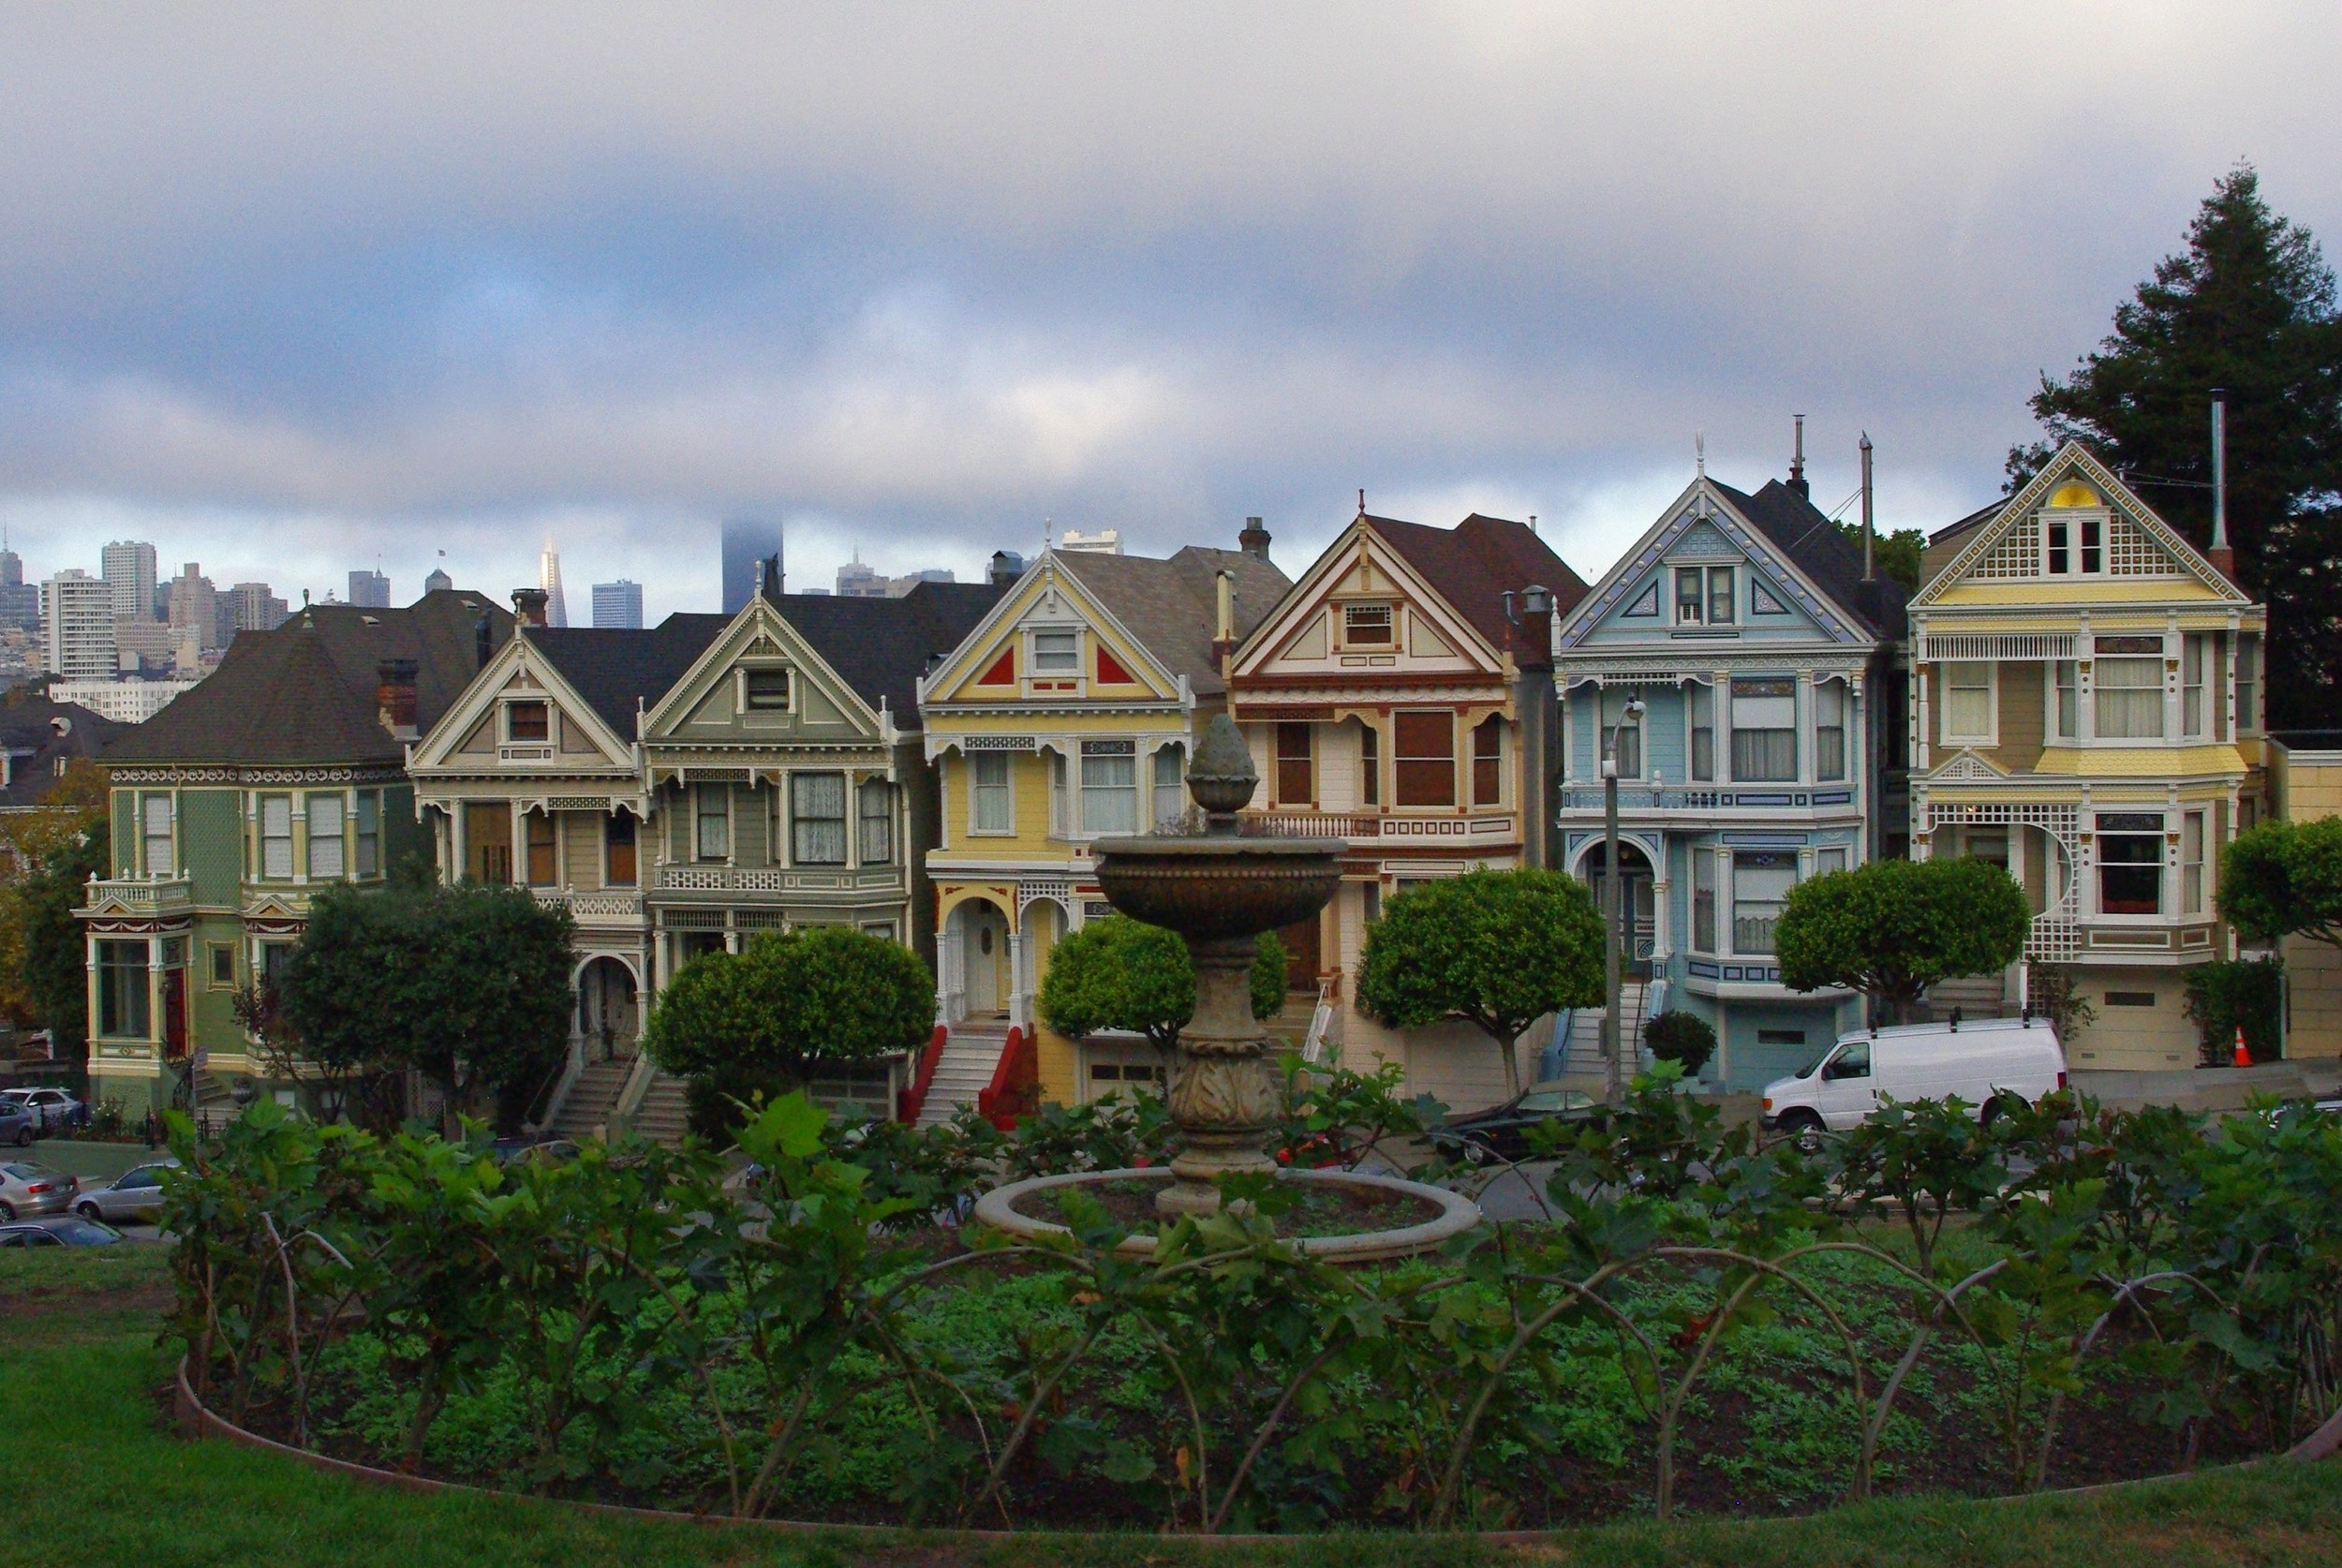 10.Admire the Painted Ladies (houses from the Full House intro)